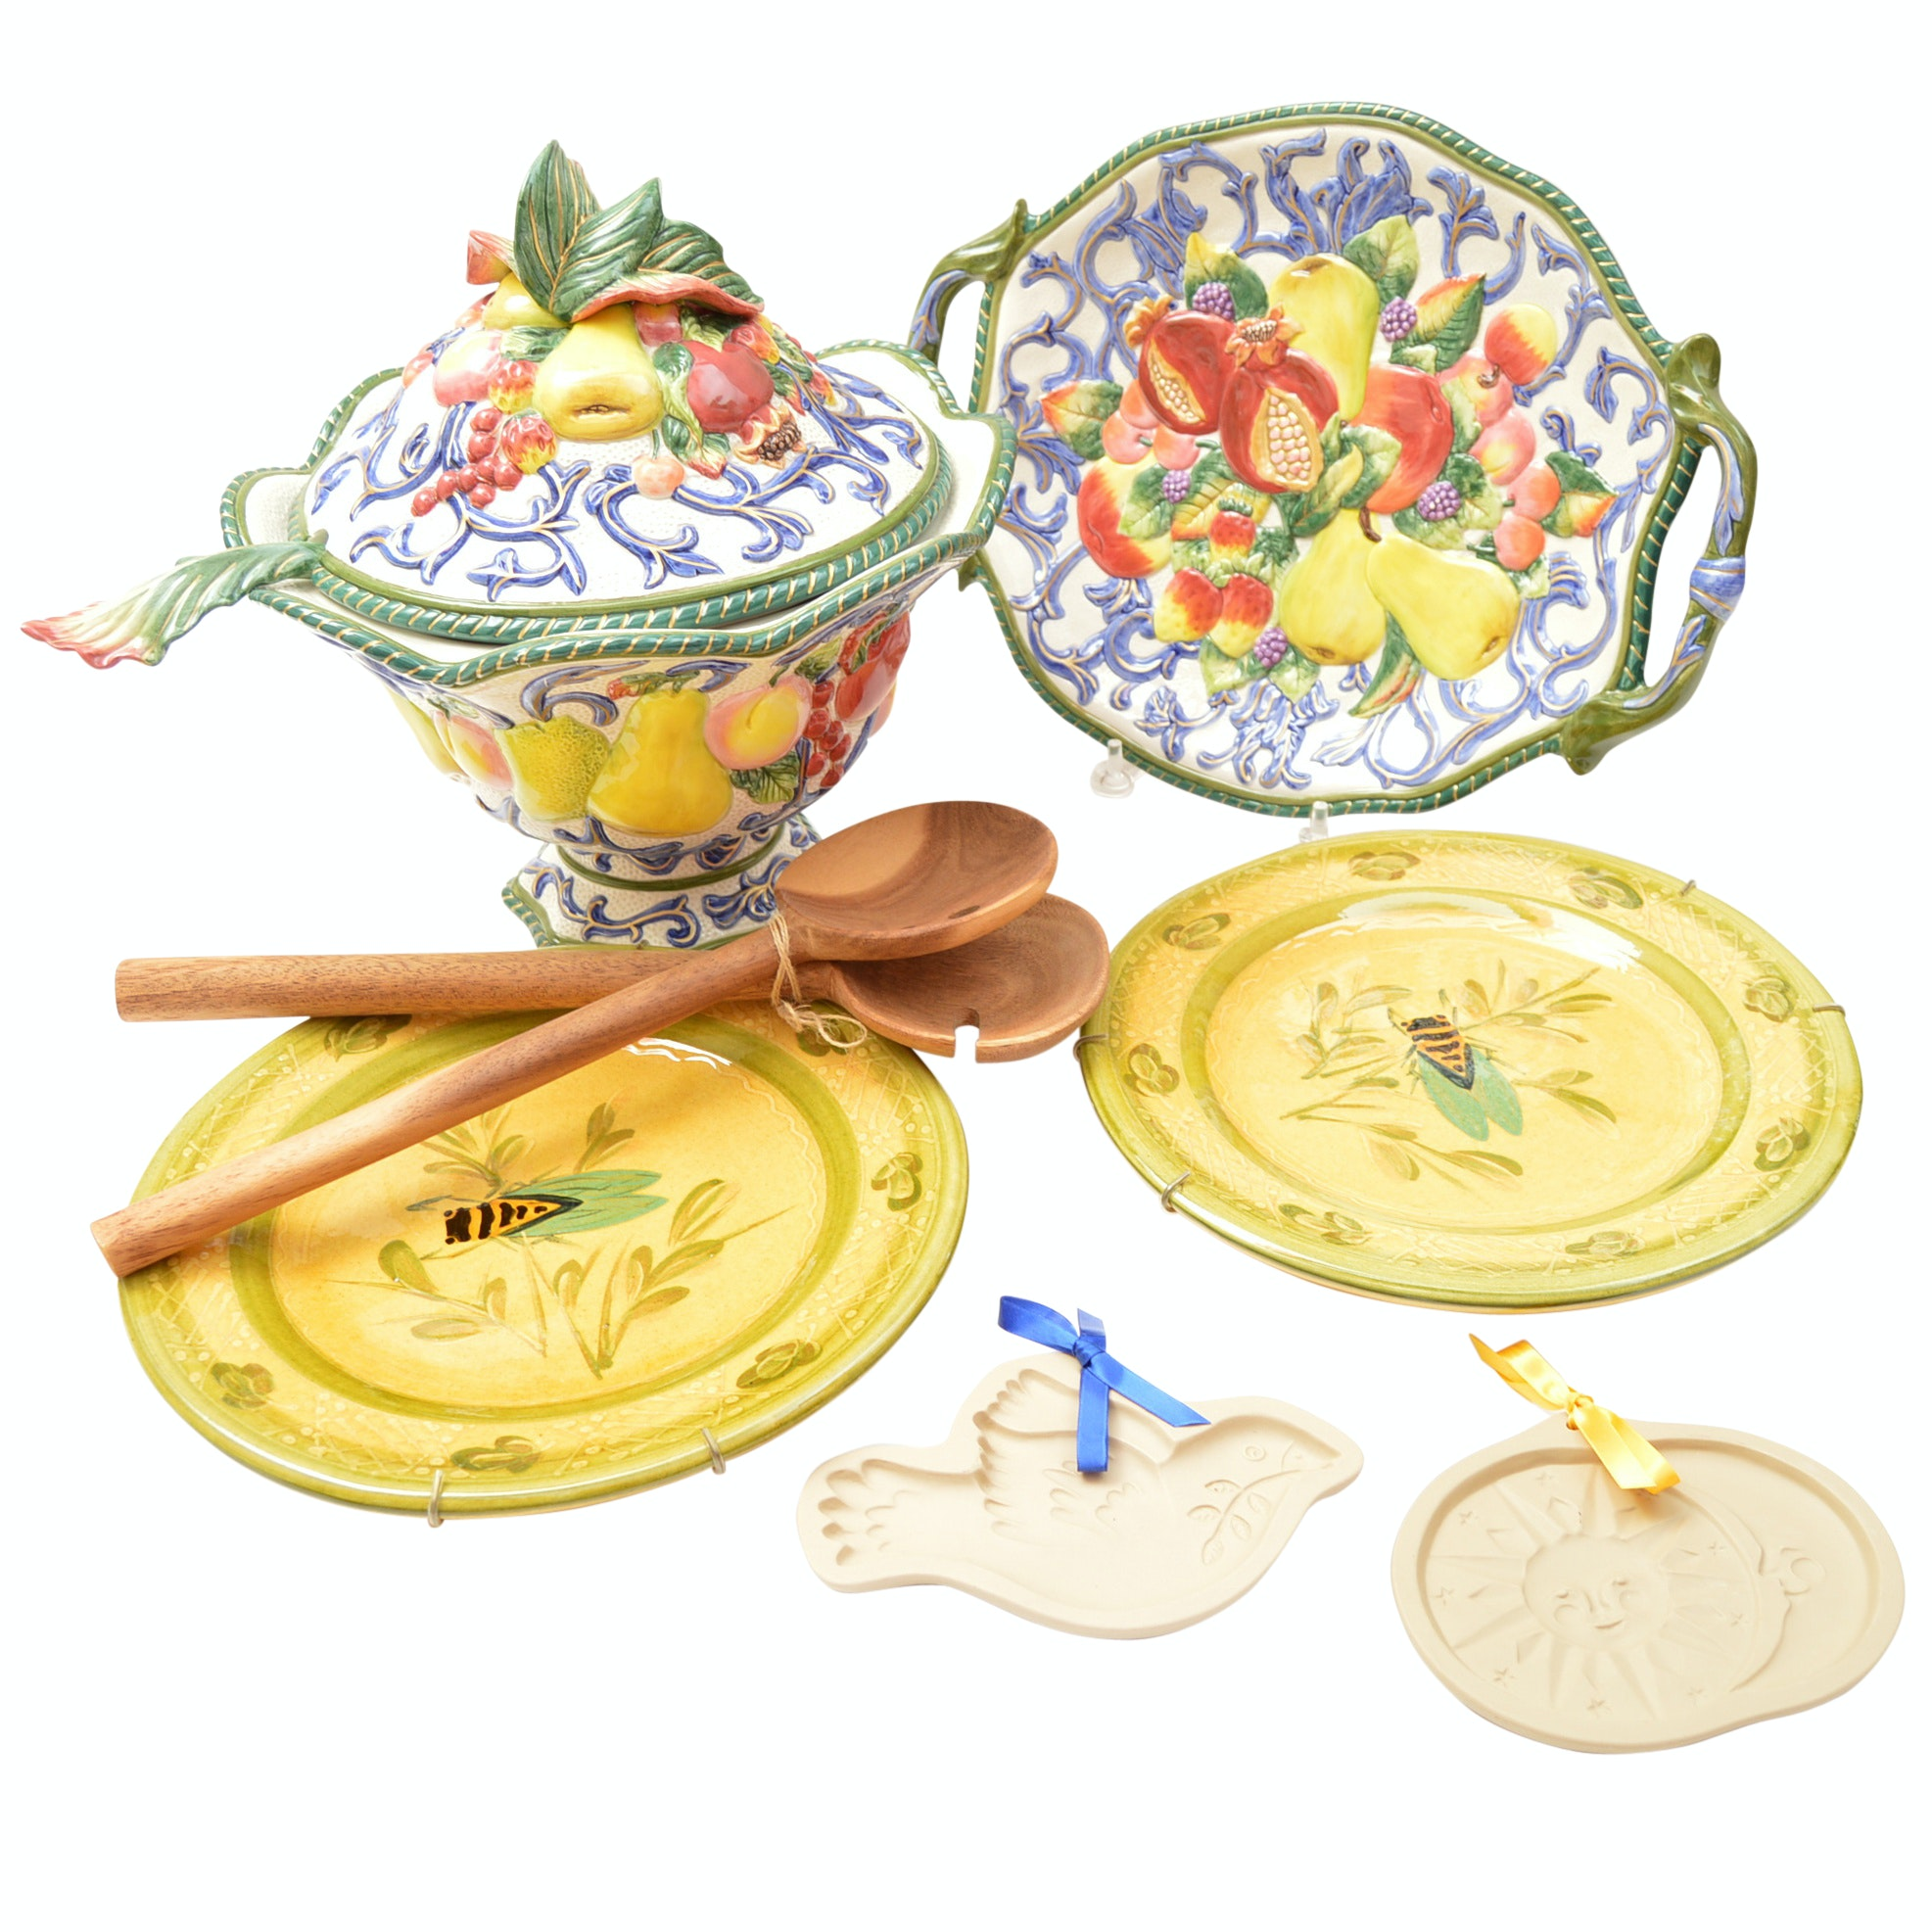 Italian Ceramic Tableware and Serveware with Fitz and Floyd Tureen